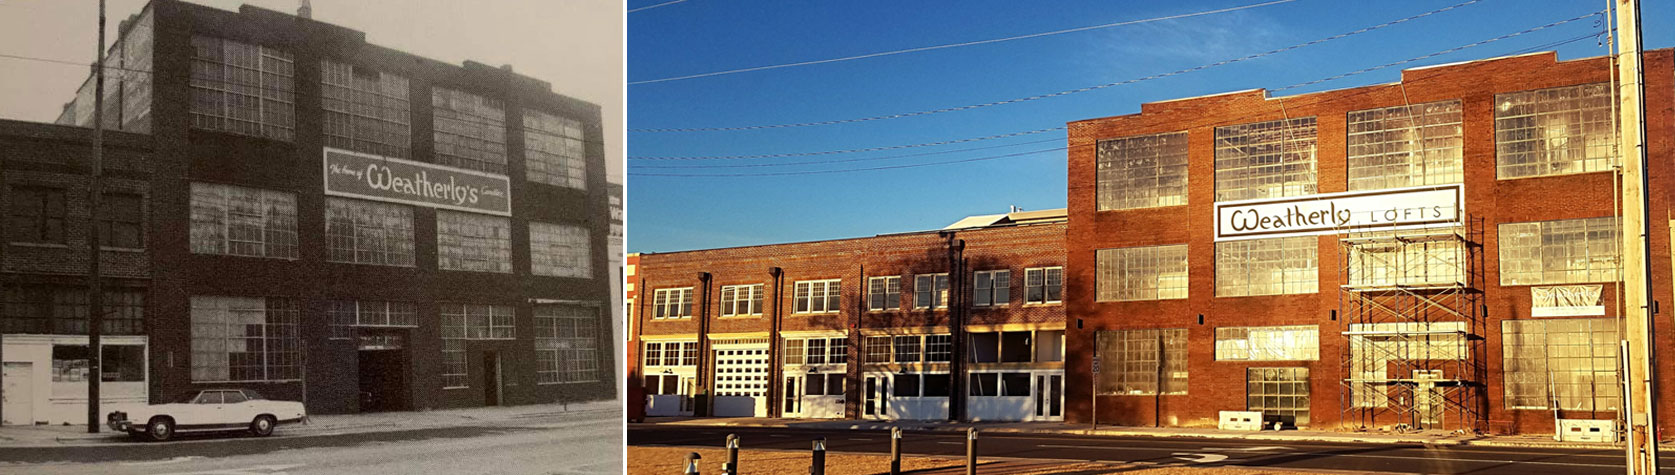 Weatherly Lofts before and after historic photo